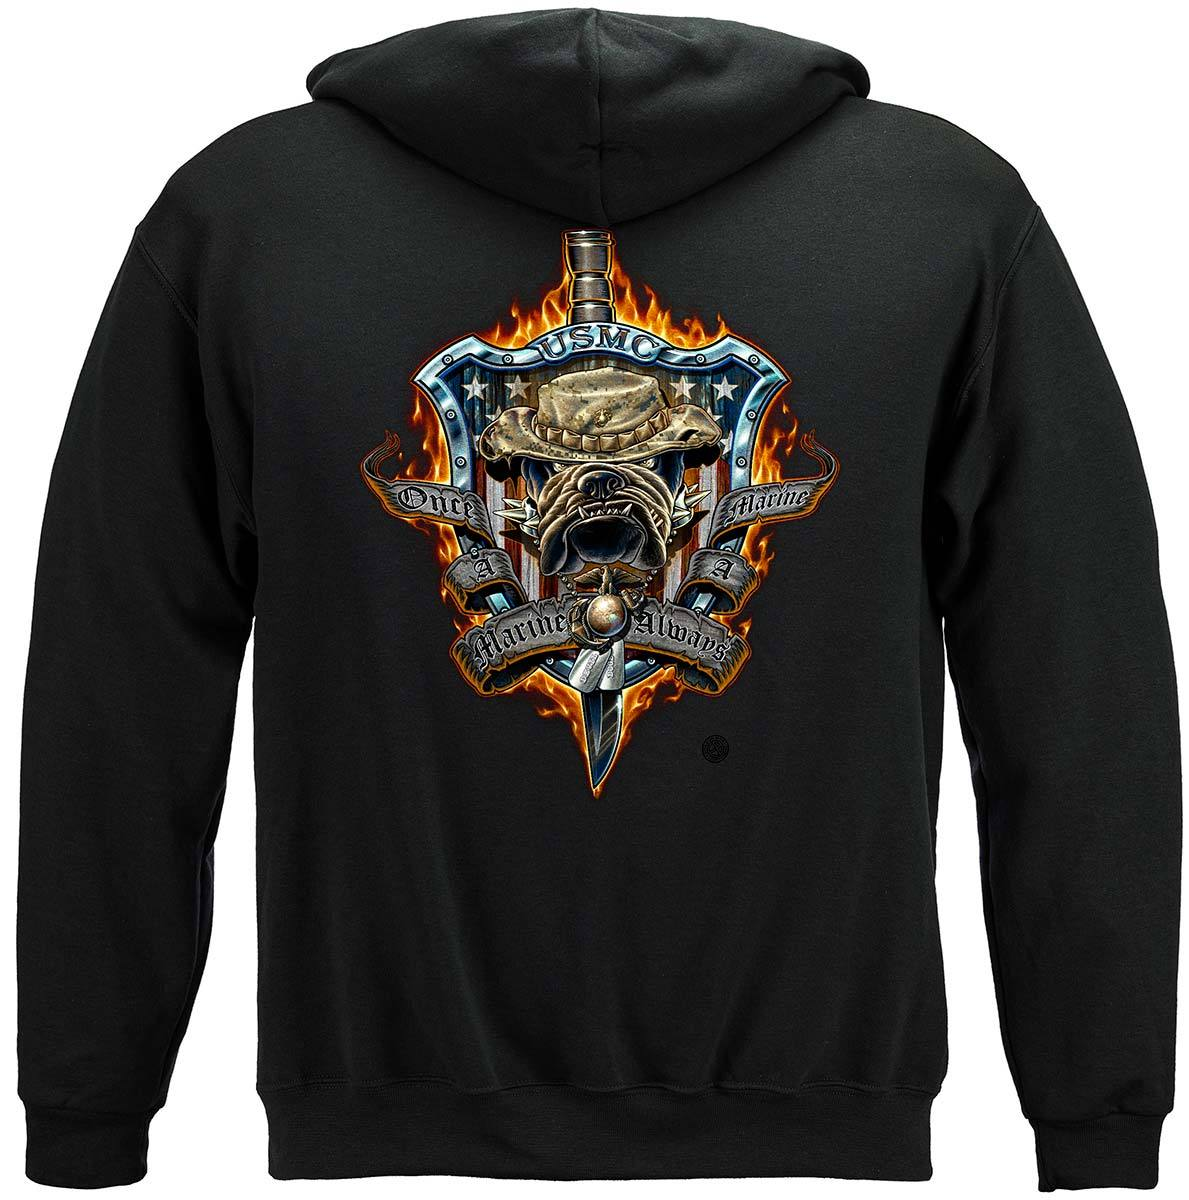 Once And Always A Marine Premium Hooded Sweat Shirt